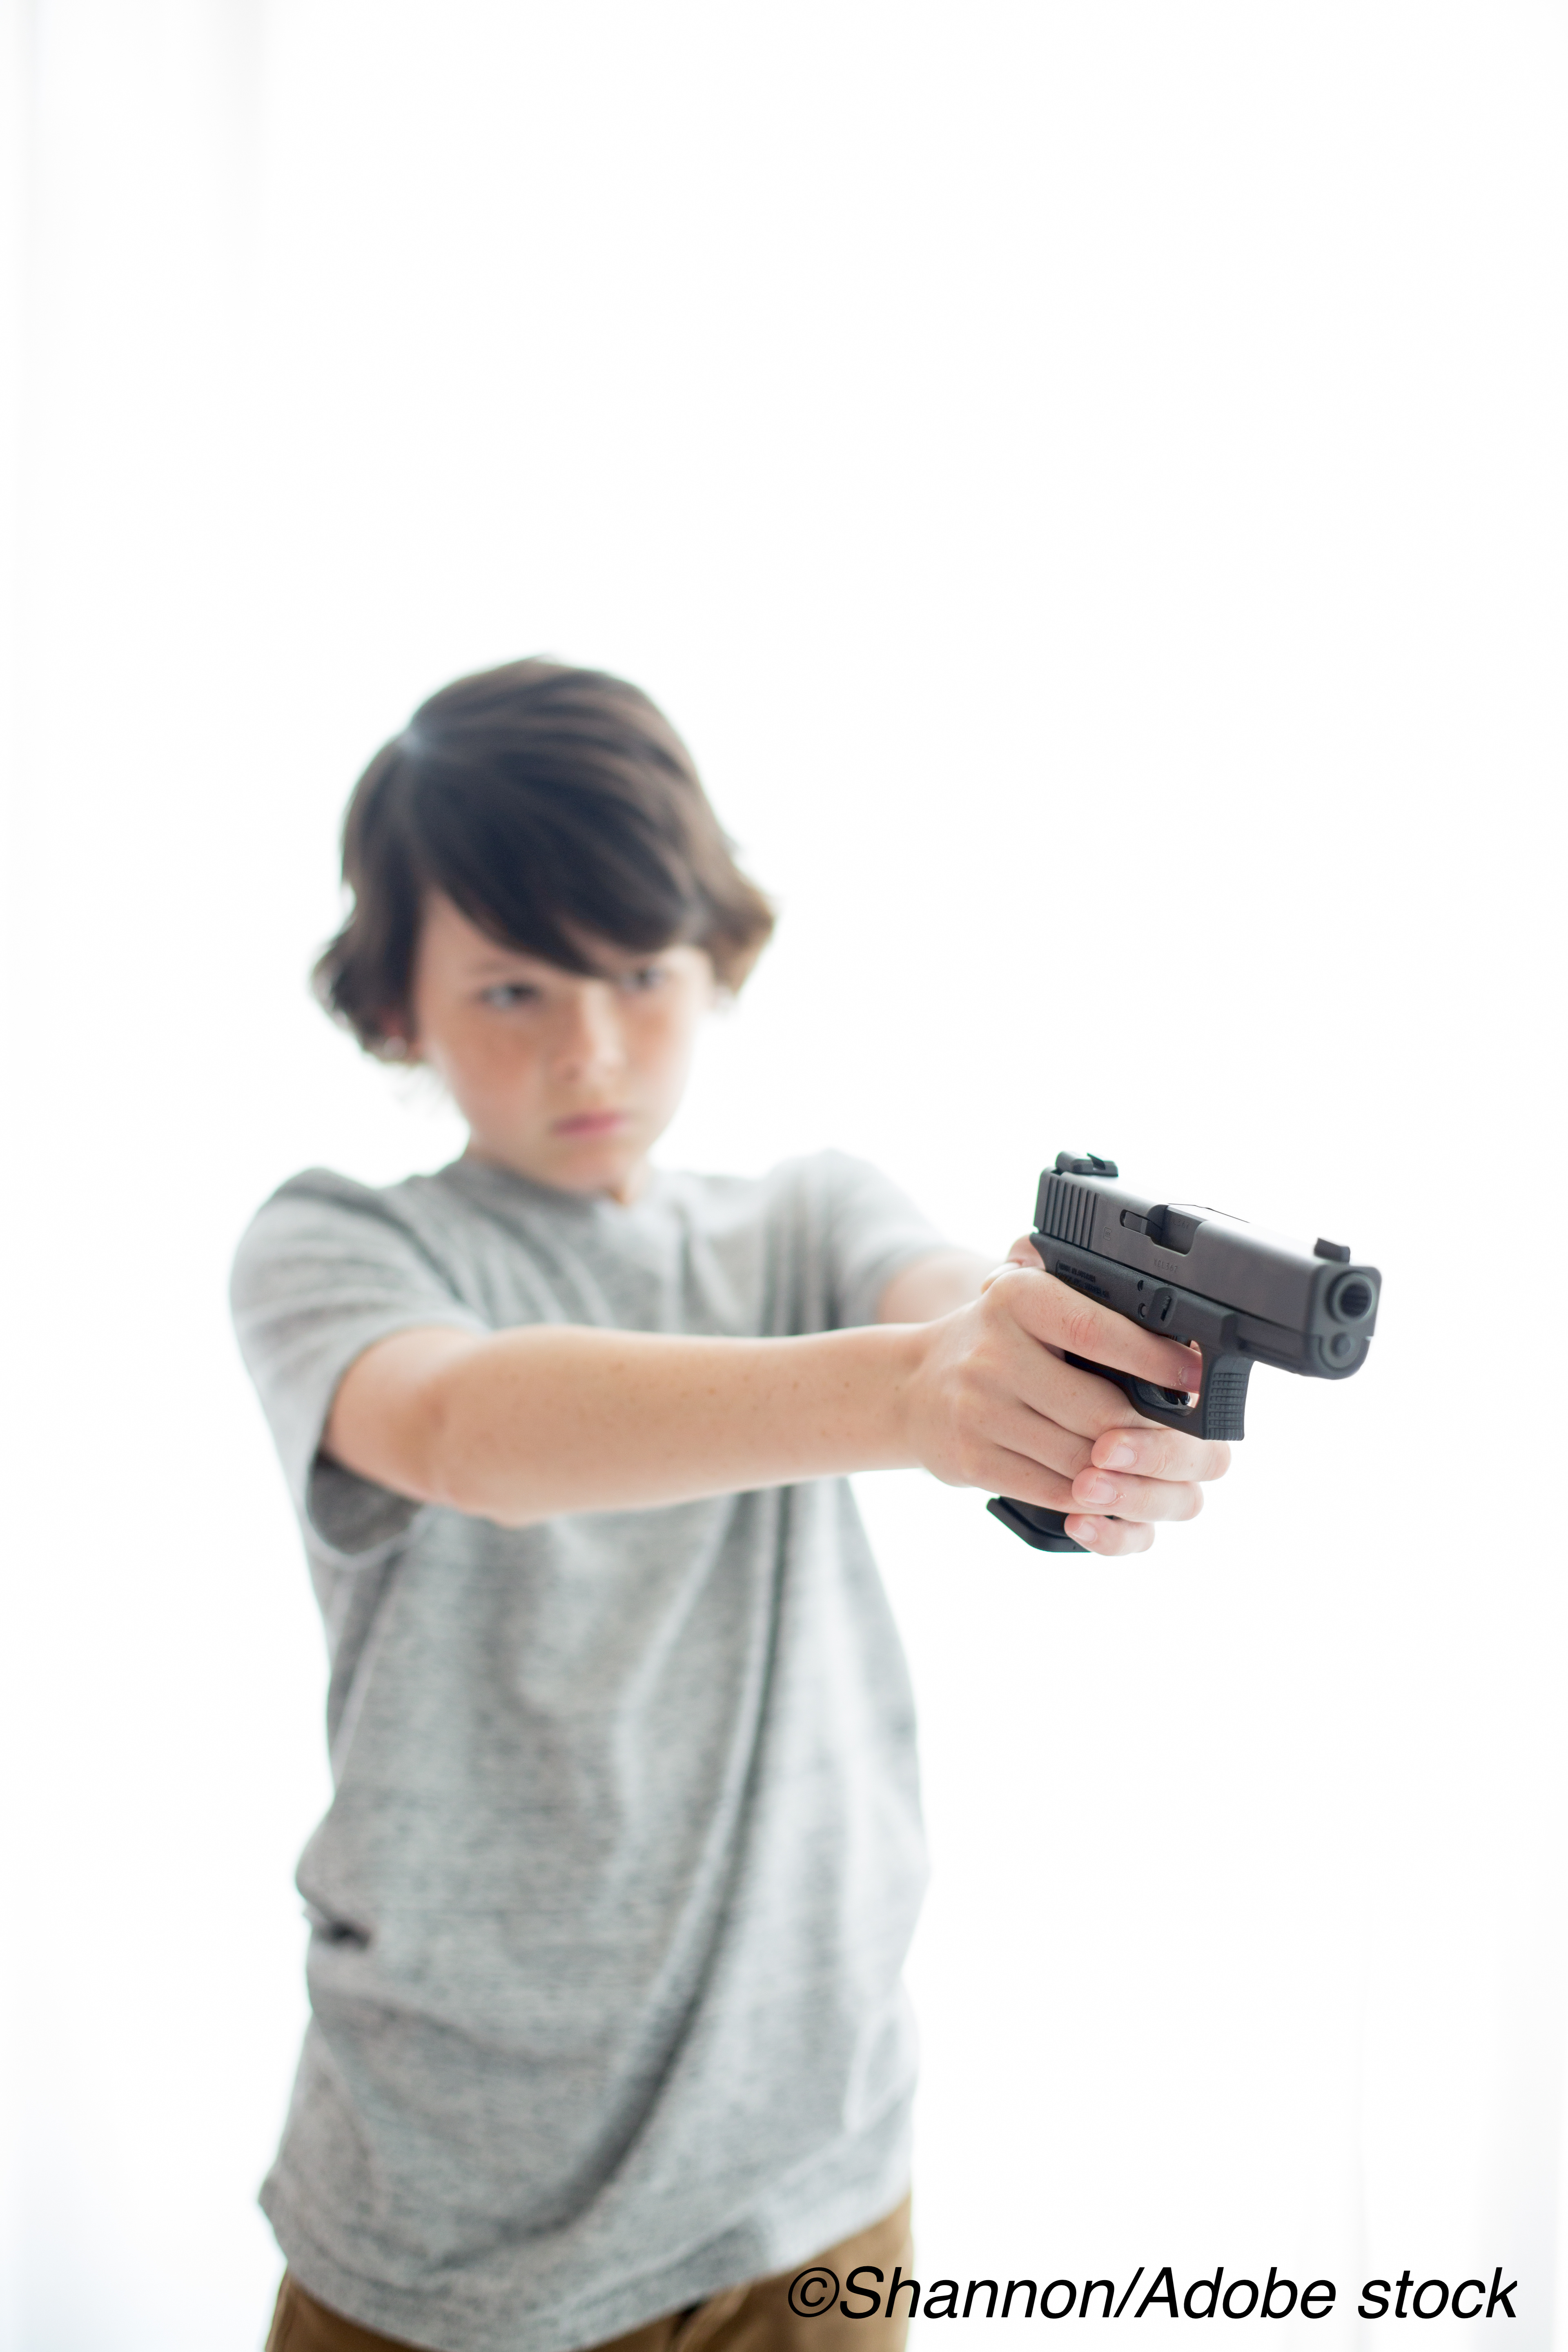 Teens Have Easy Access To Loaded Weapons, Even If Locked